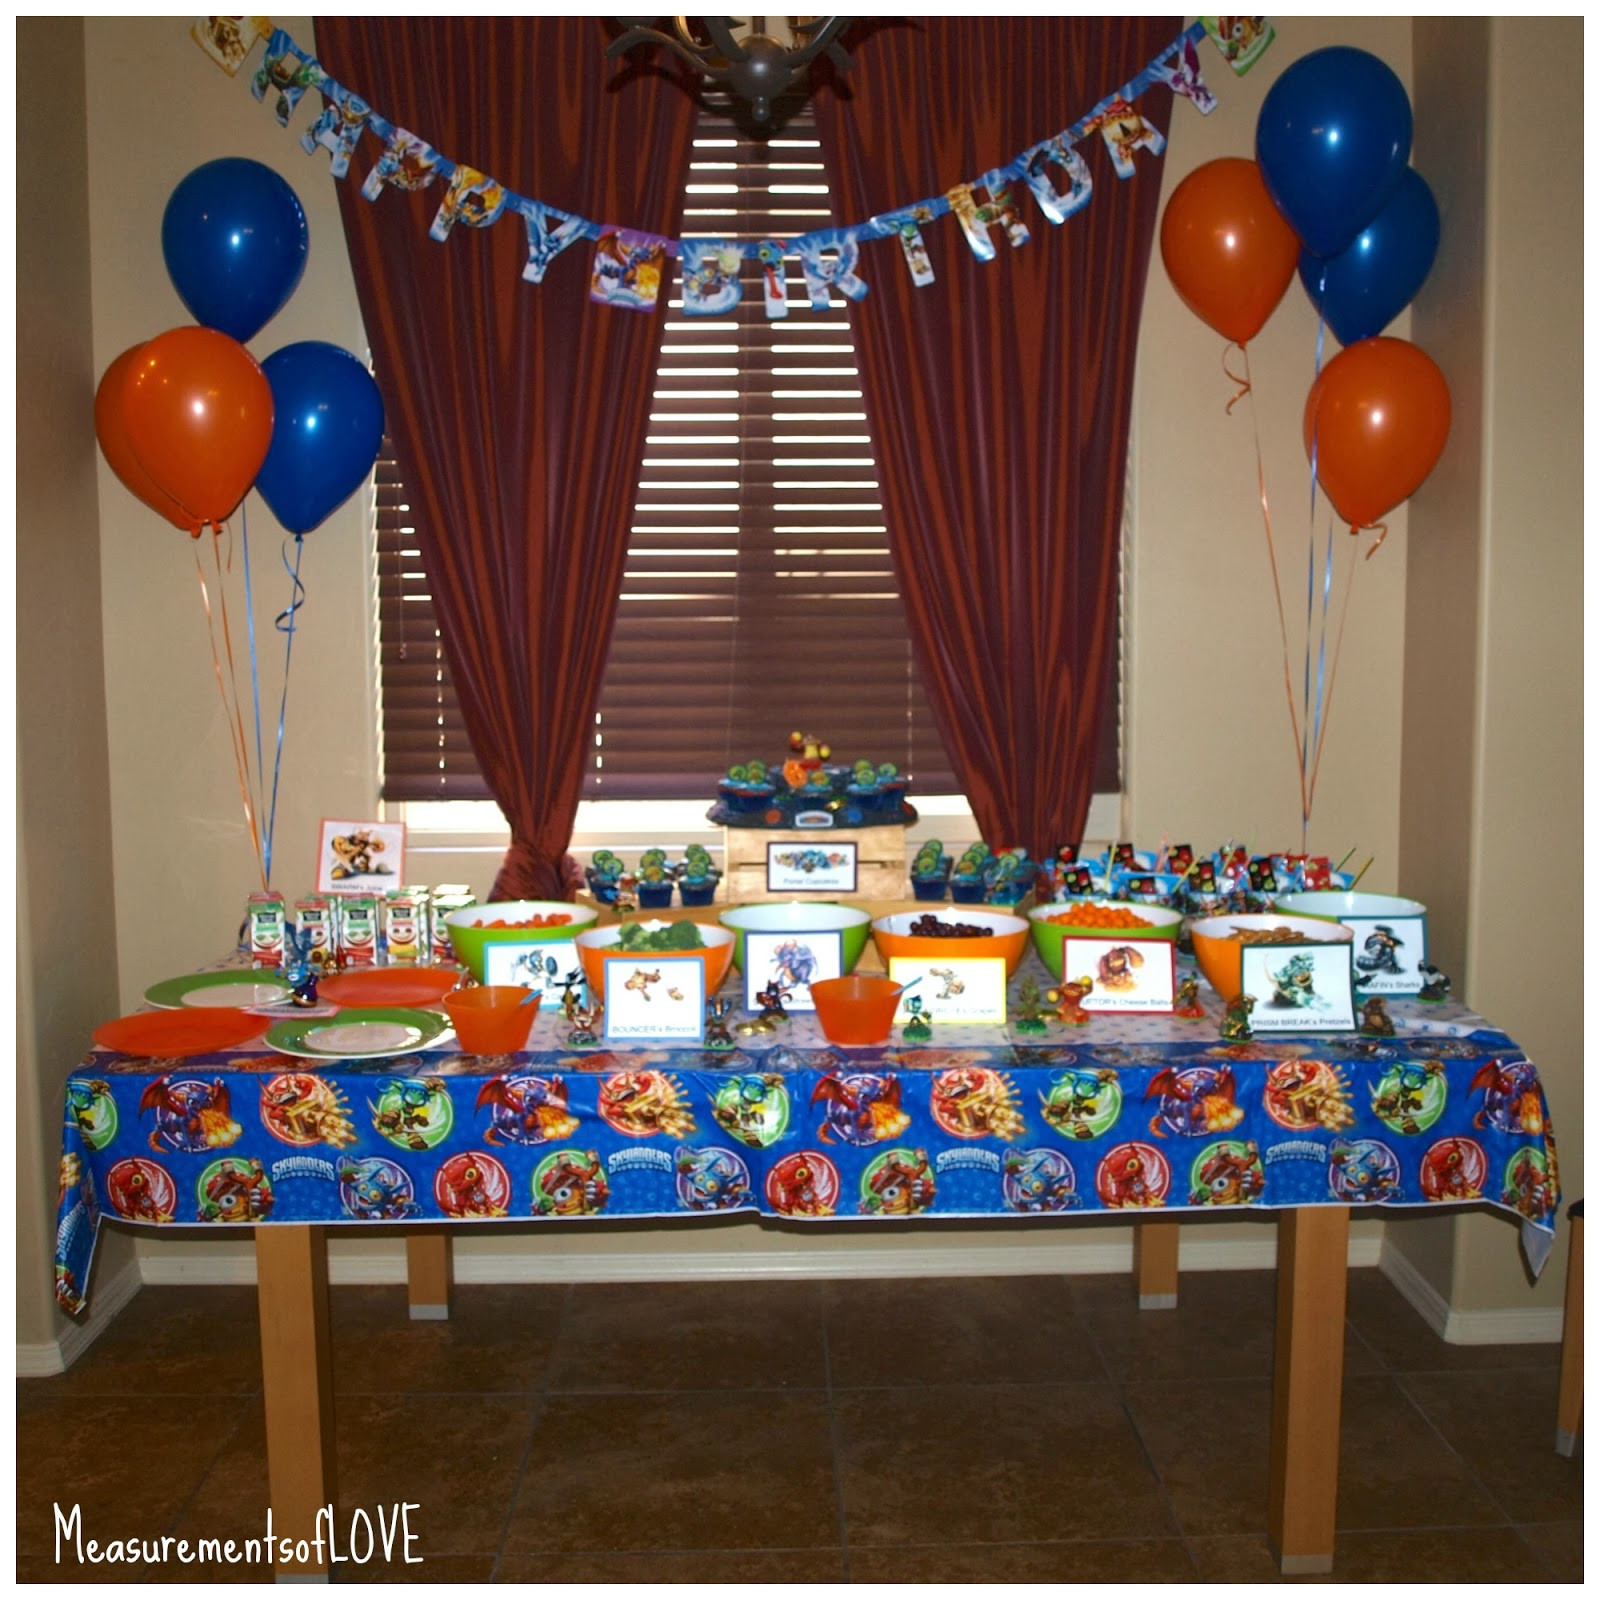 Best ideas about Skylanders Birthday Party . Save or Pin Measurements of Merriment Skylanders Birthday Party Now.